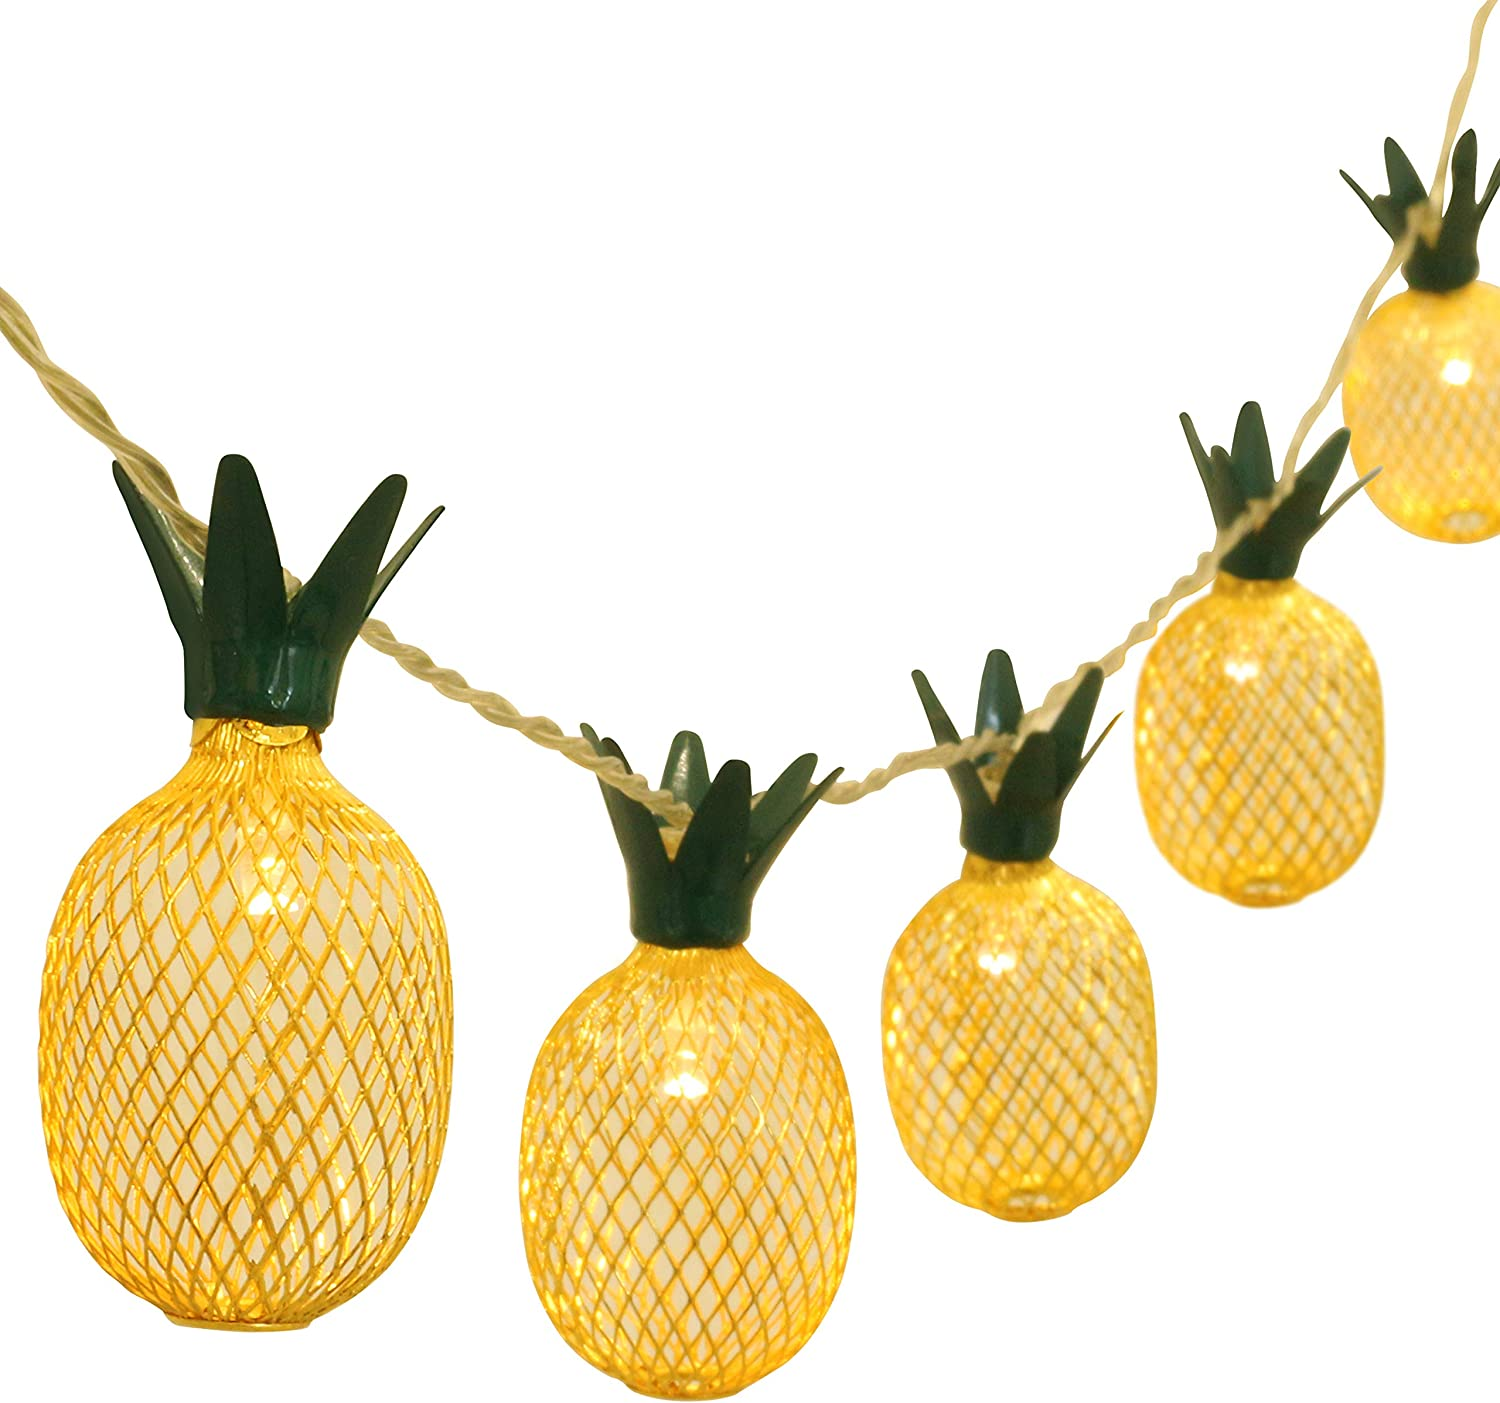 GIGALUMI Pineapple String Lights 6ft 10 LED Fairy String Lights Battery Operated for Christmas Home Wedding Party Bedroom Birthday Decoration